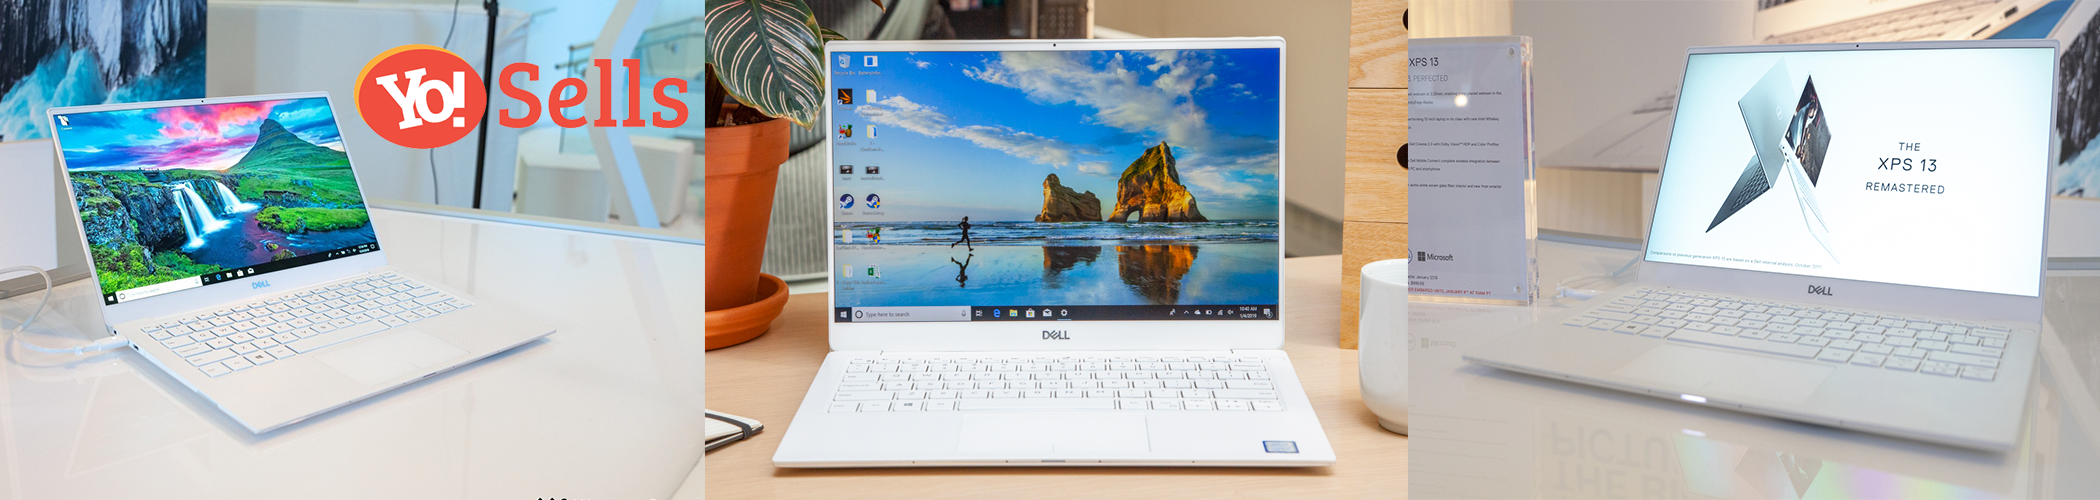 10 Dell XPS 13 The best Laptops on Amazon (Top 10) 2